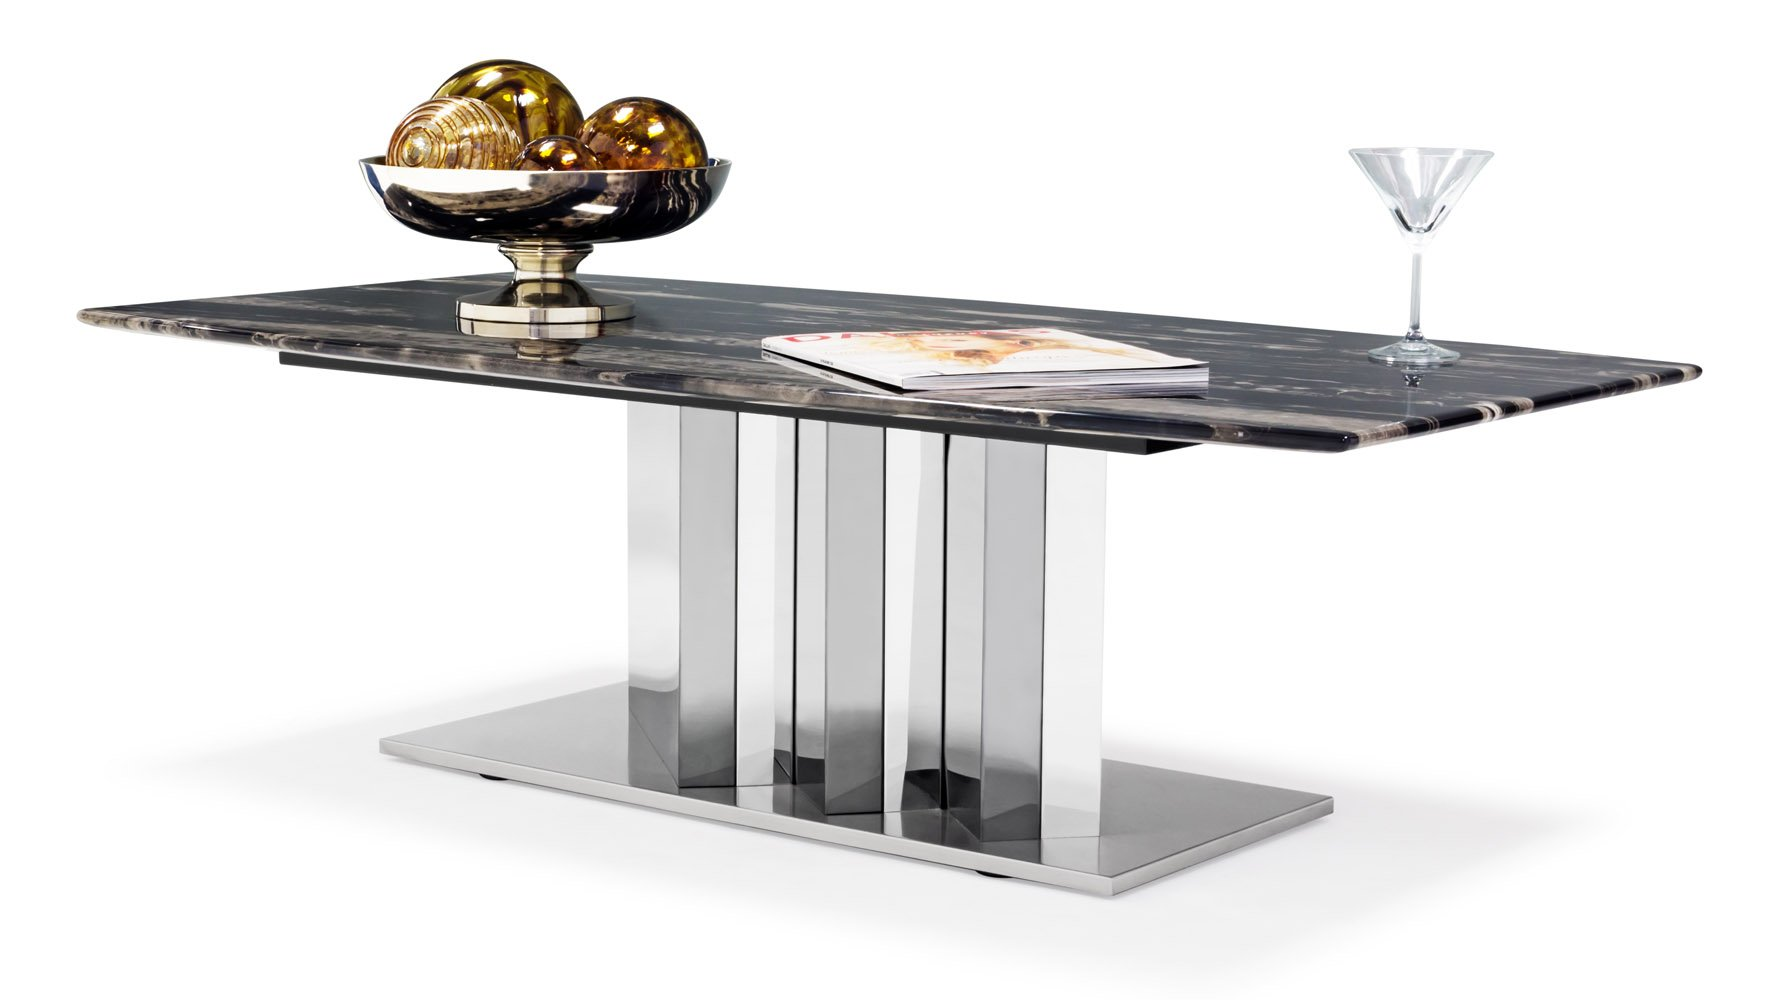 100 Syrah Coffee Table Accent Tables And Console  : nero marble coffee table 1 from 45.32.79.15 size 1778 x 1000 jpeg 109kB